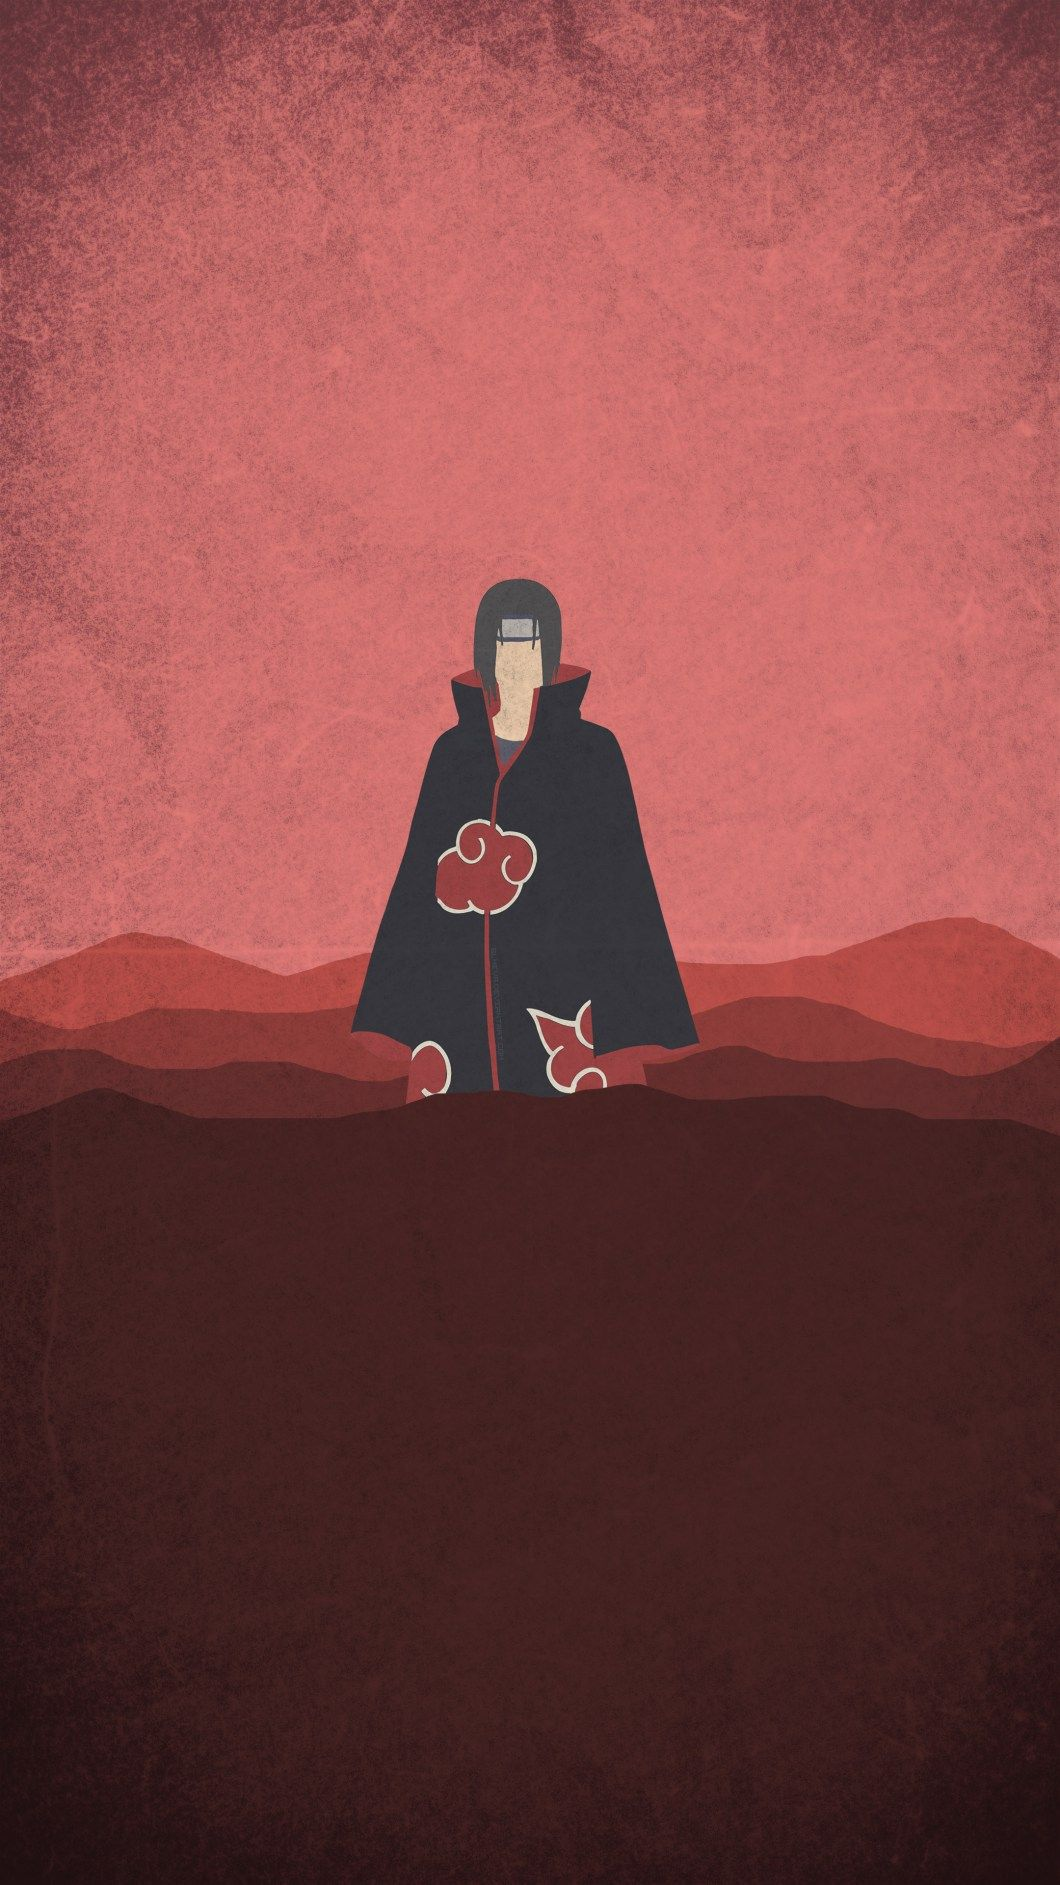 1060x1885 10 Badass Itachi Uchiha Wallpapers for iPhone And Android - The ...